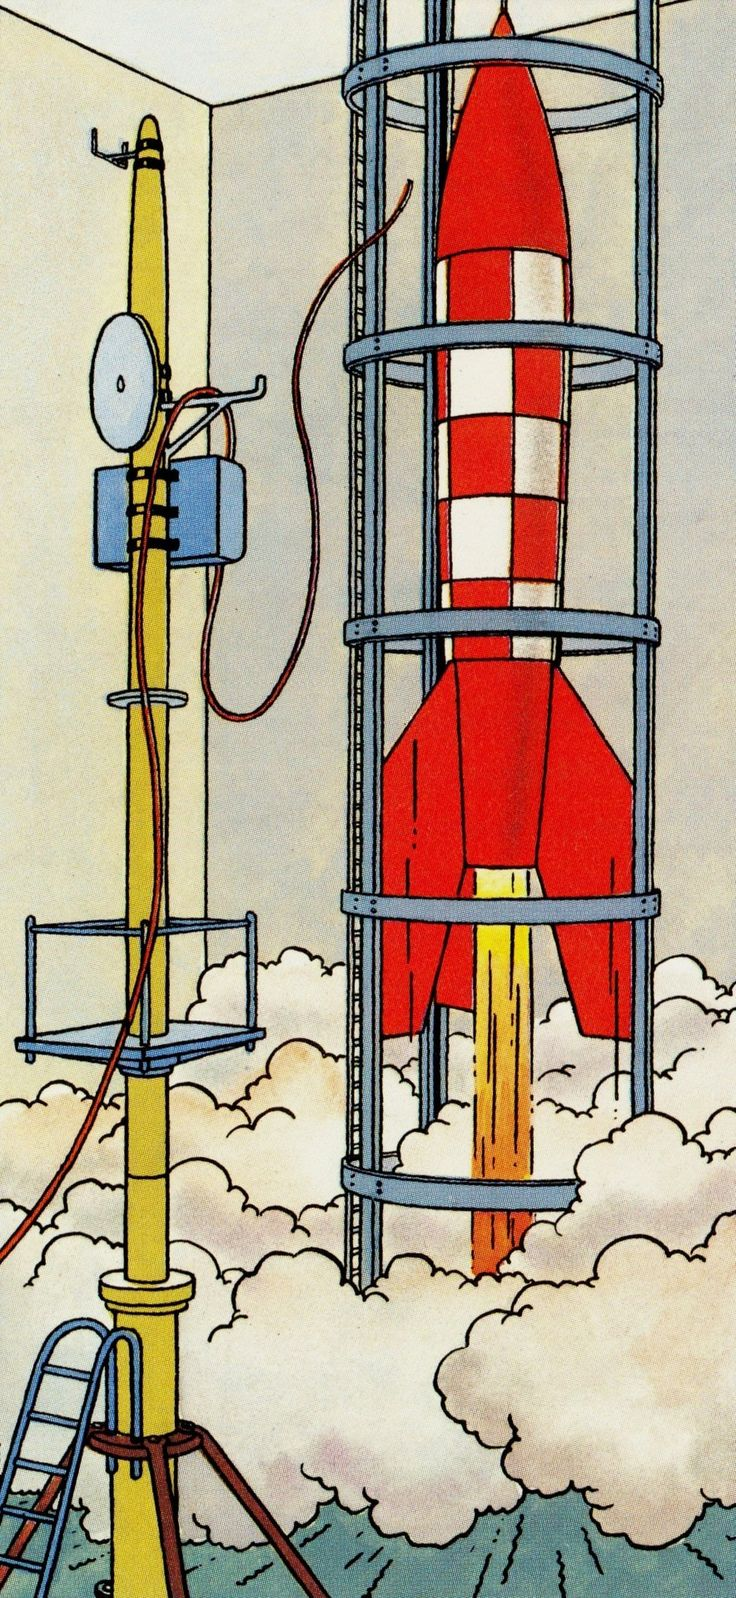 Herge From Tintin Magazine 1952 April 23 Blue Coloring